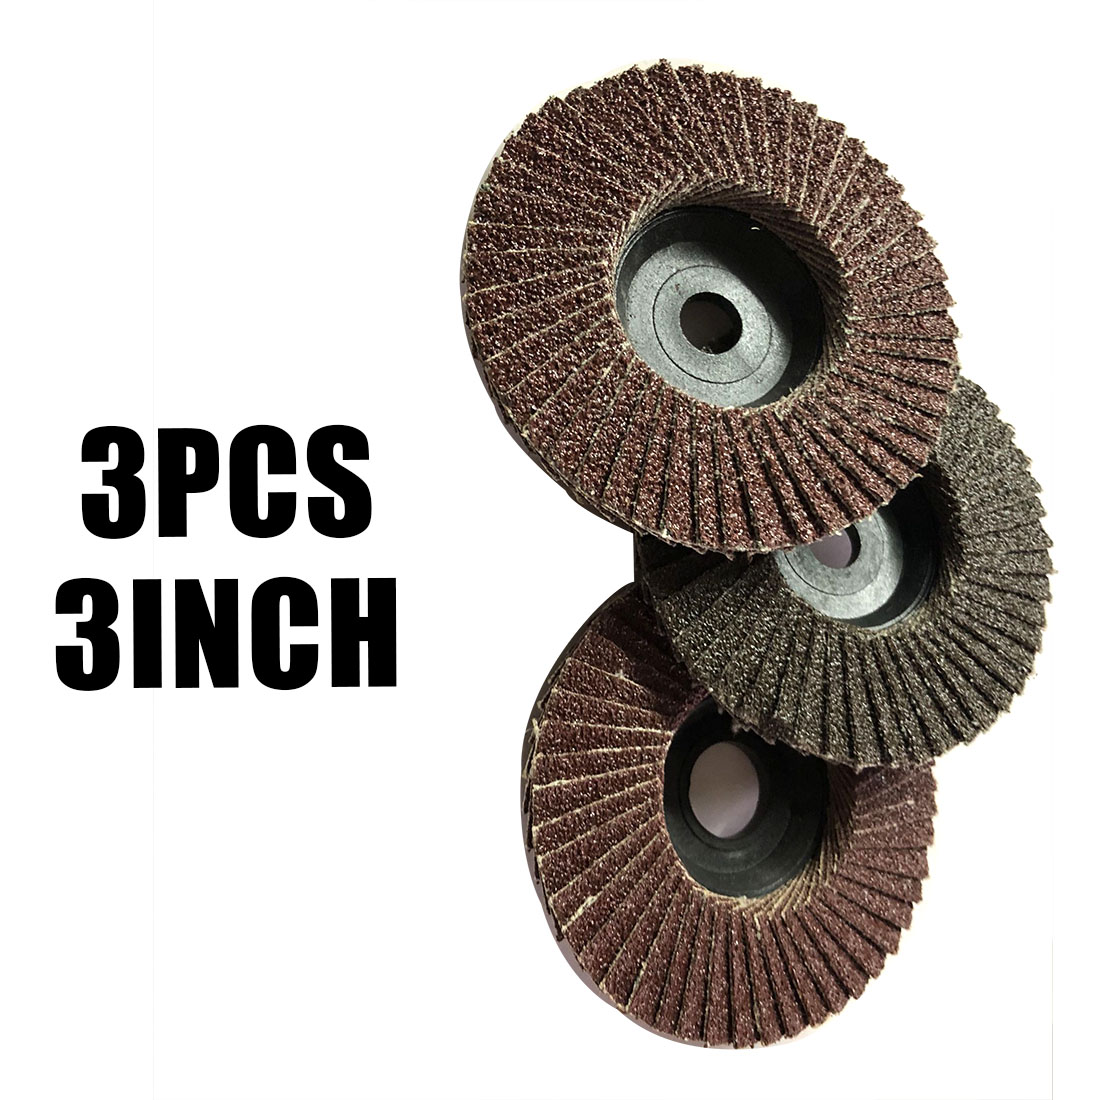 3pcs 75mm 3-Inch Flap Sanding Disc Angle Grinder Discs Metal Grinding Wheel For Builders And DIY Enthusiasts